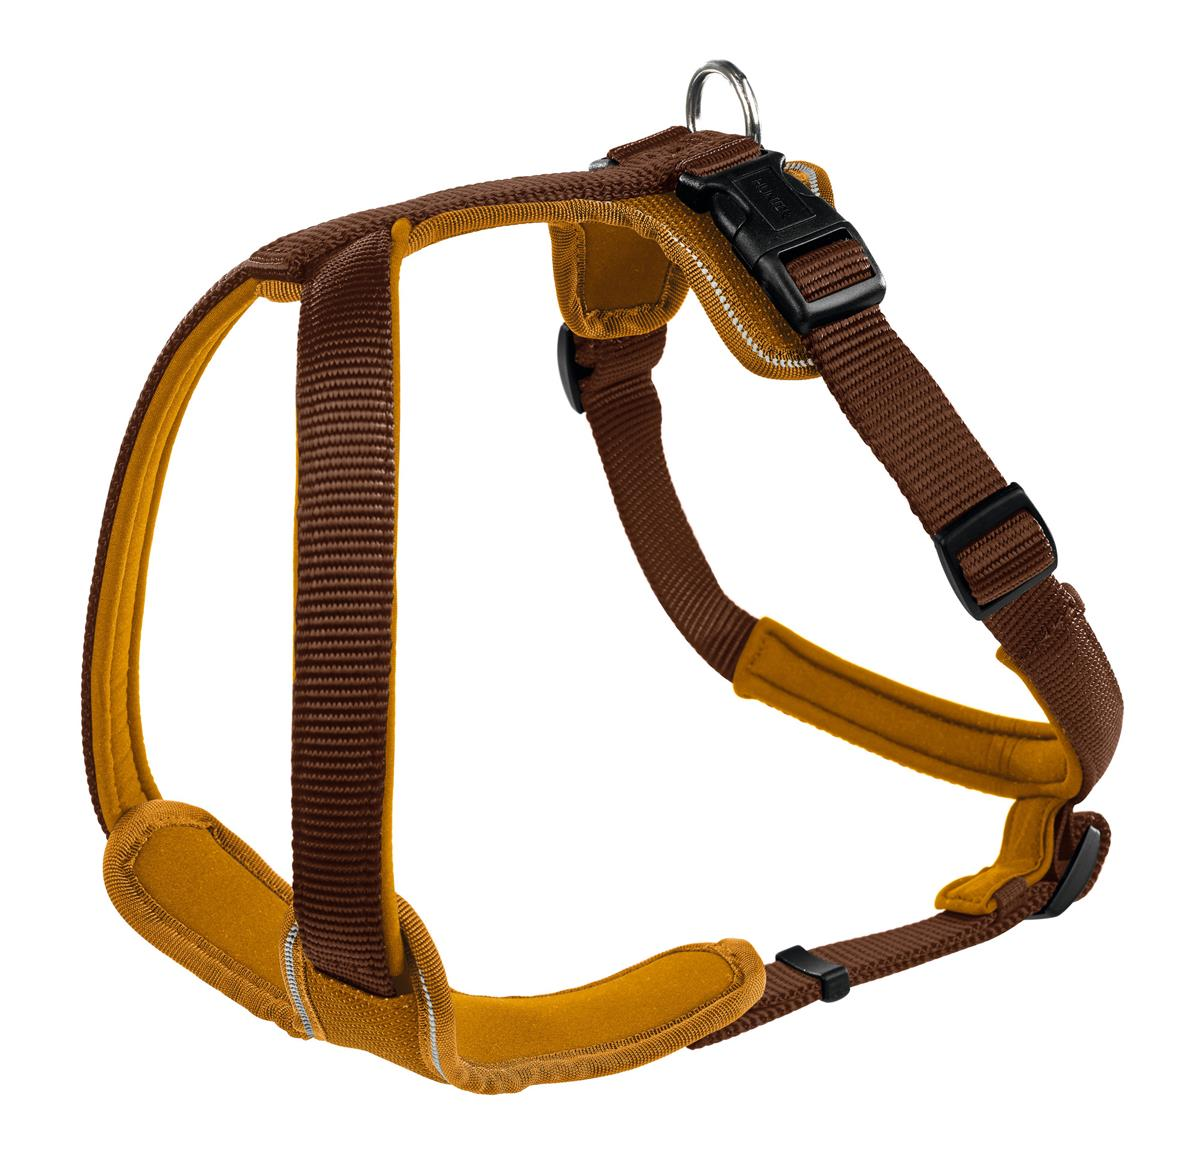 Harness Neopren XS 38-48 cm, 15 mm brown/caramel